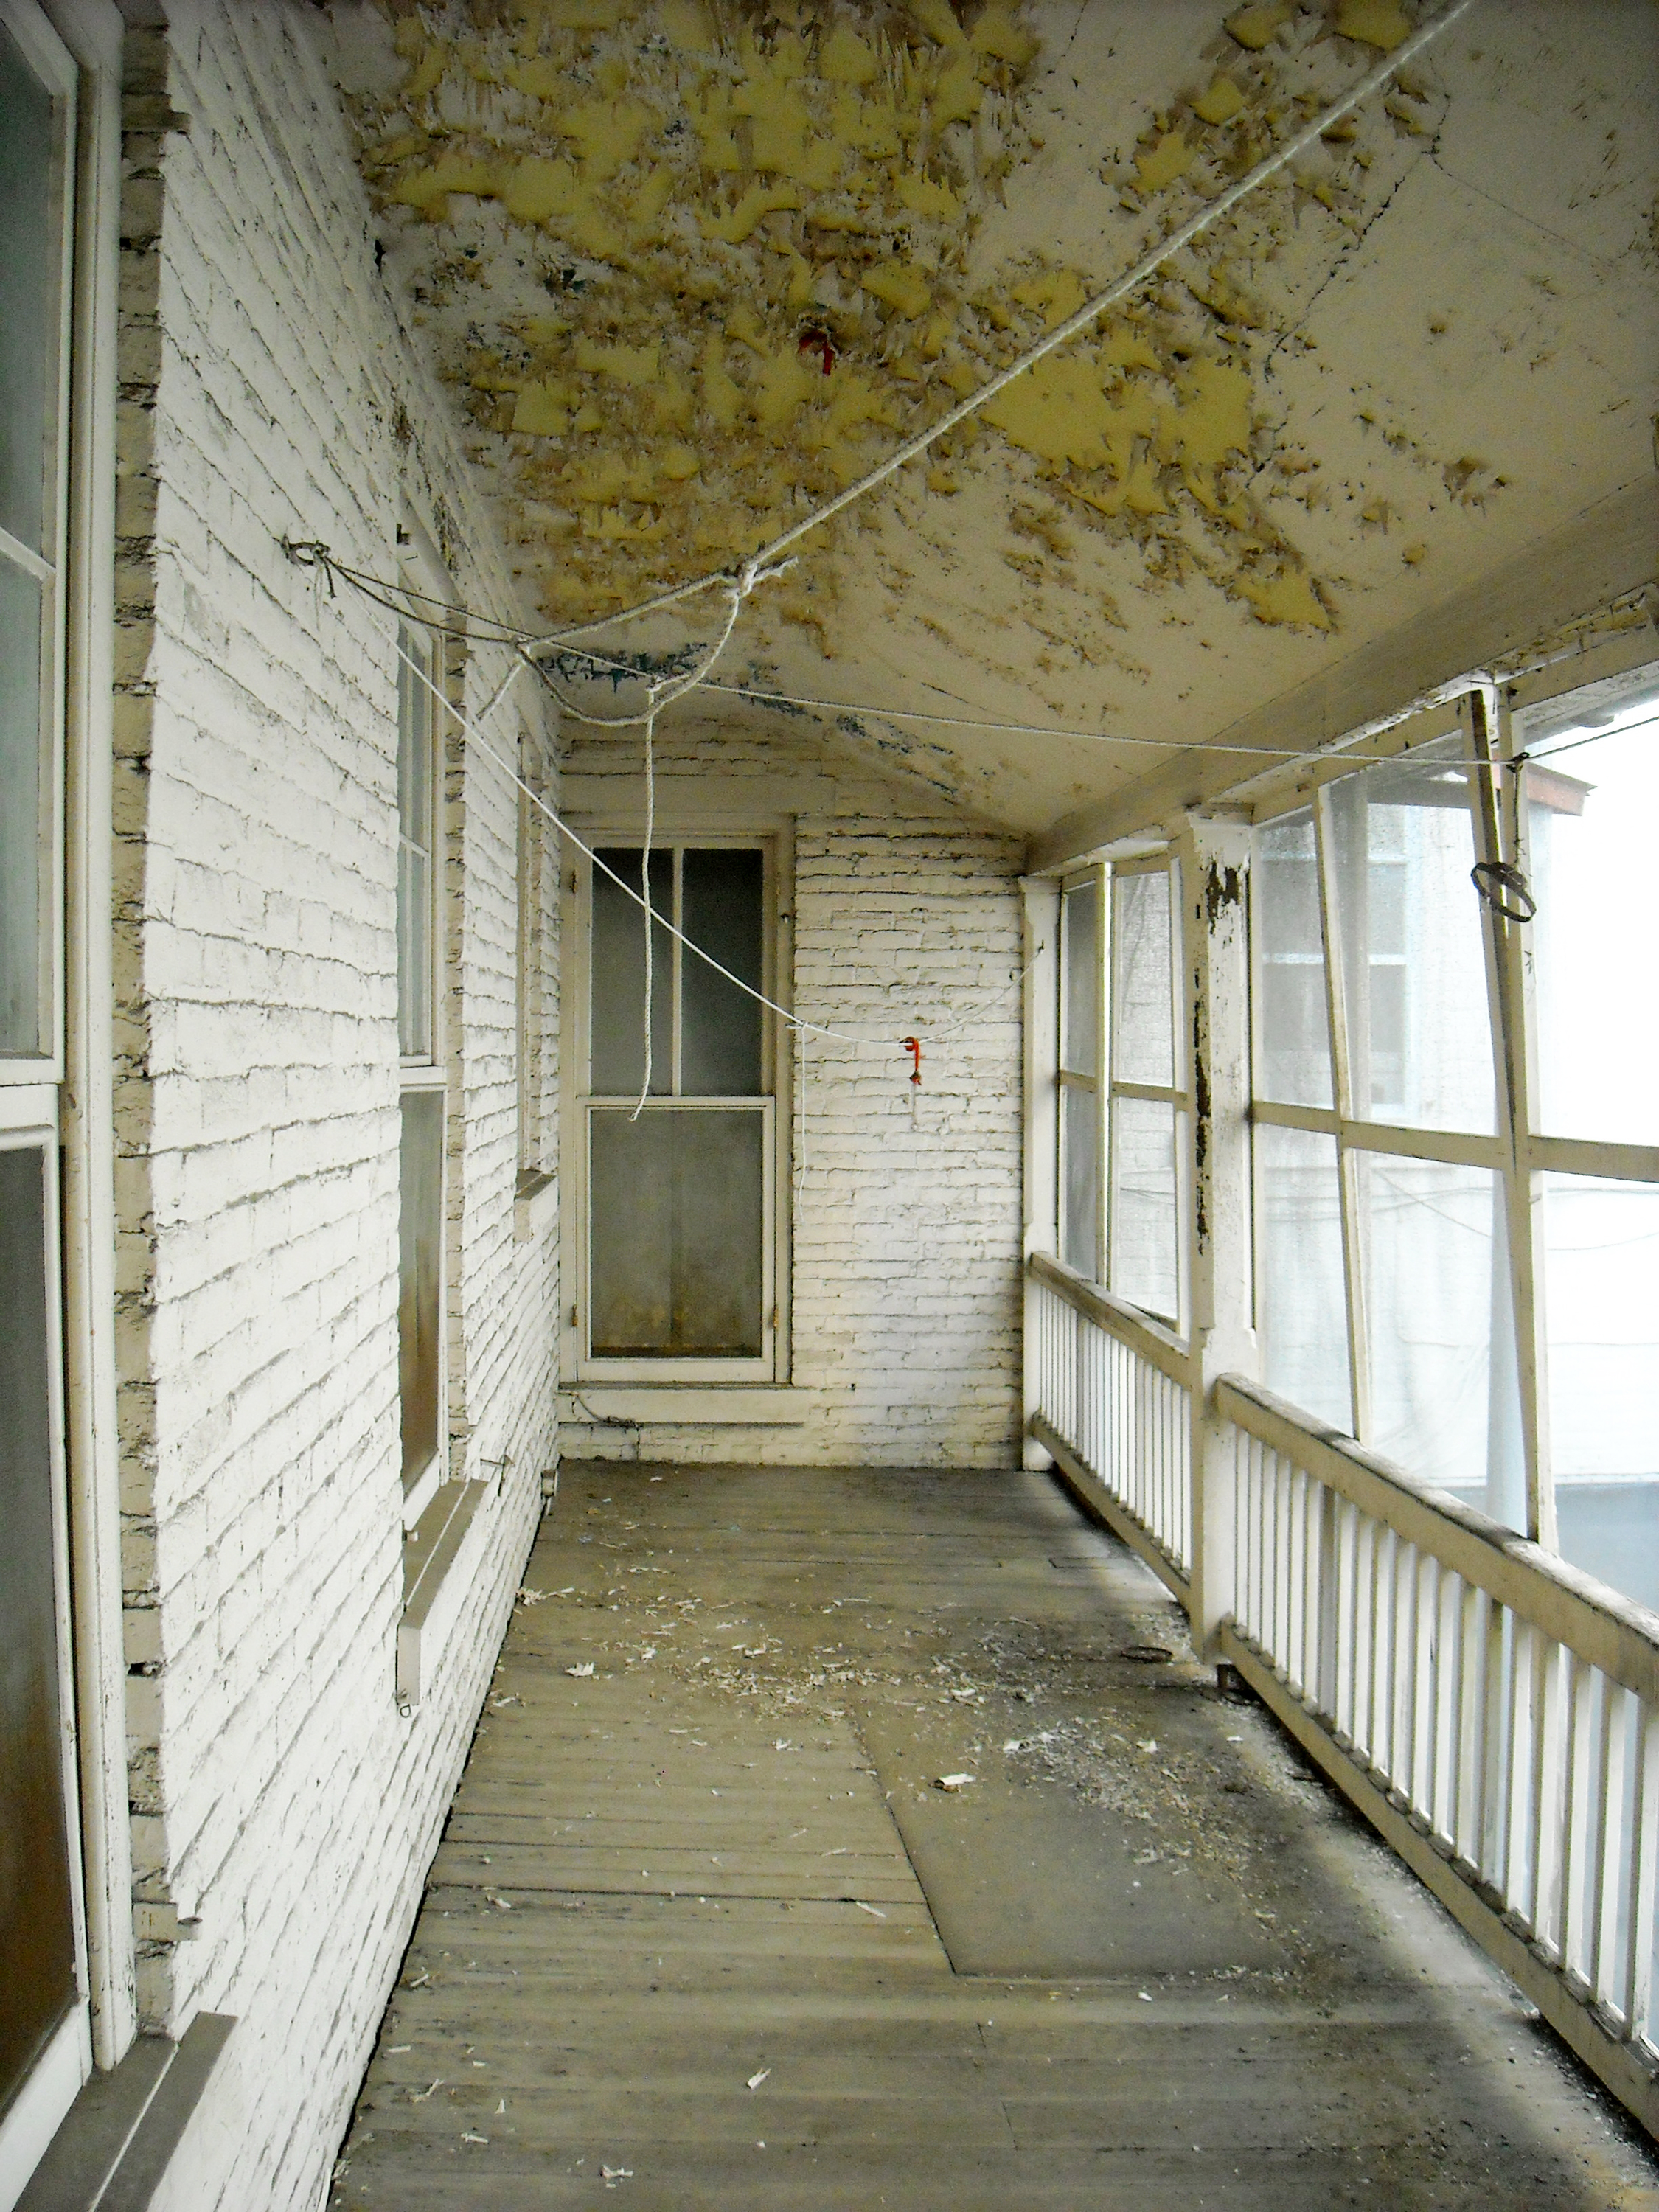 The DeWitt Building prior to renovations.